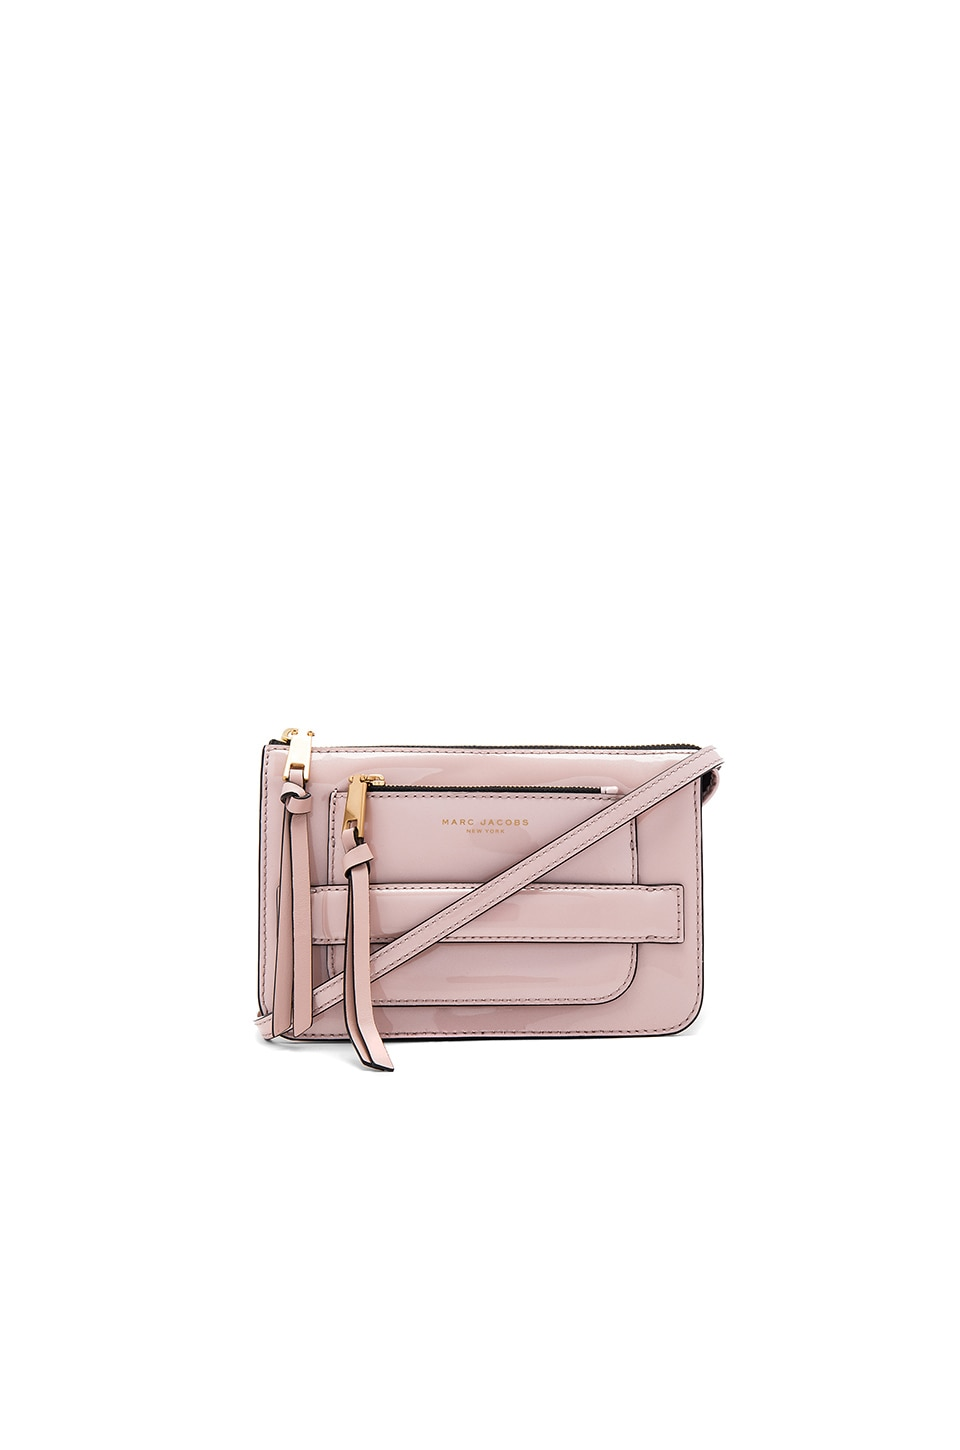 Marc Jacobs Madison Patent Crossbody Bag in Rose Smoke